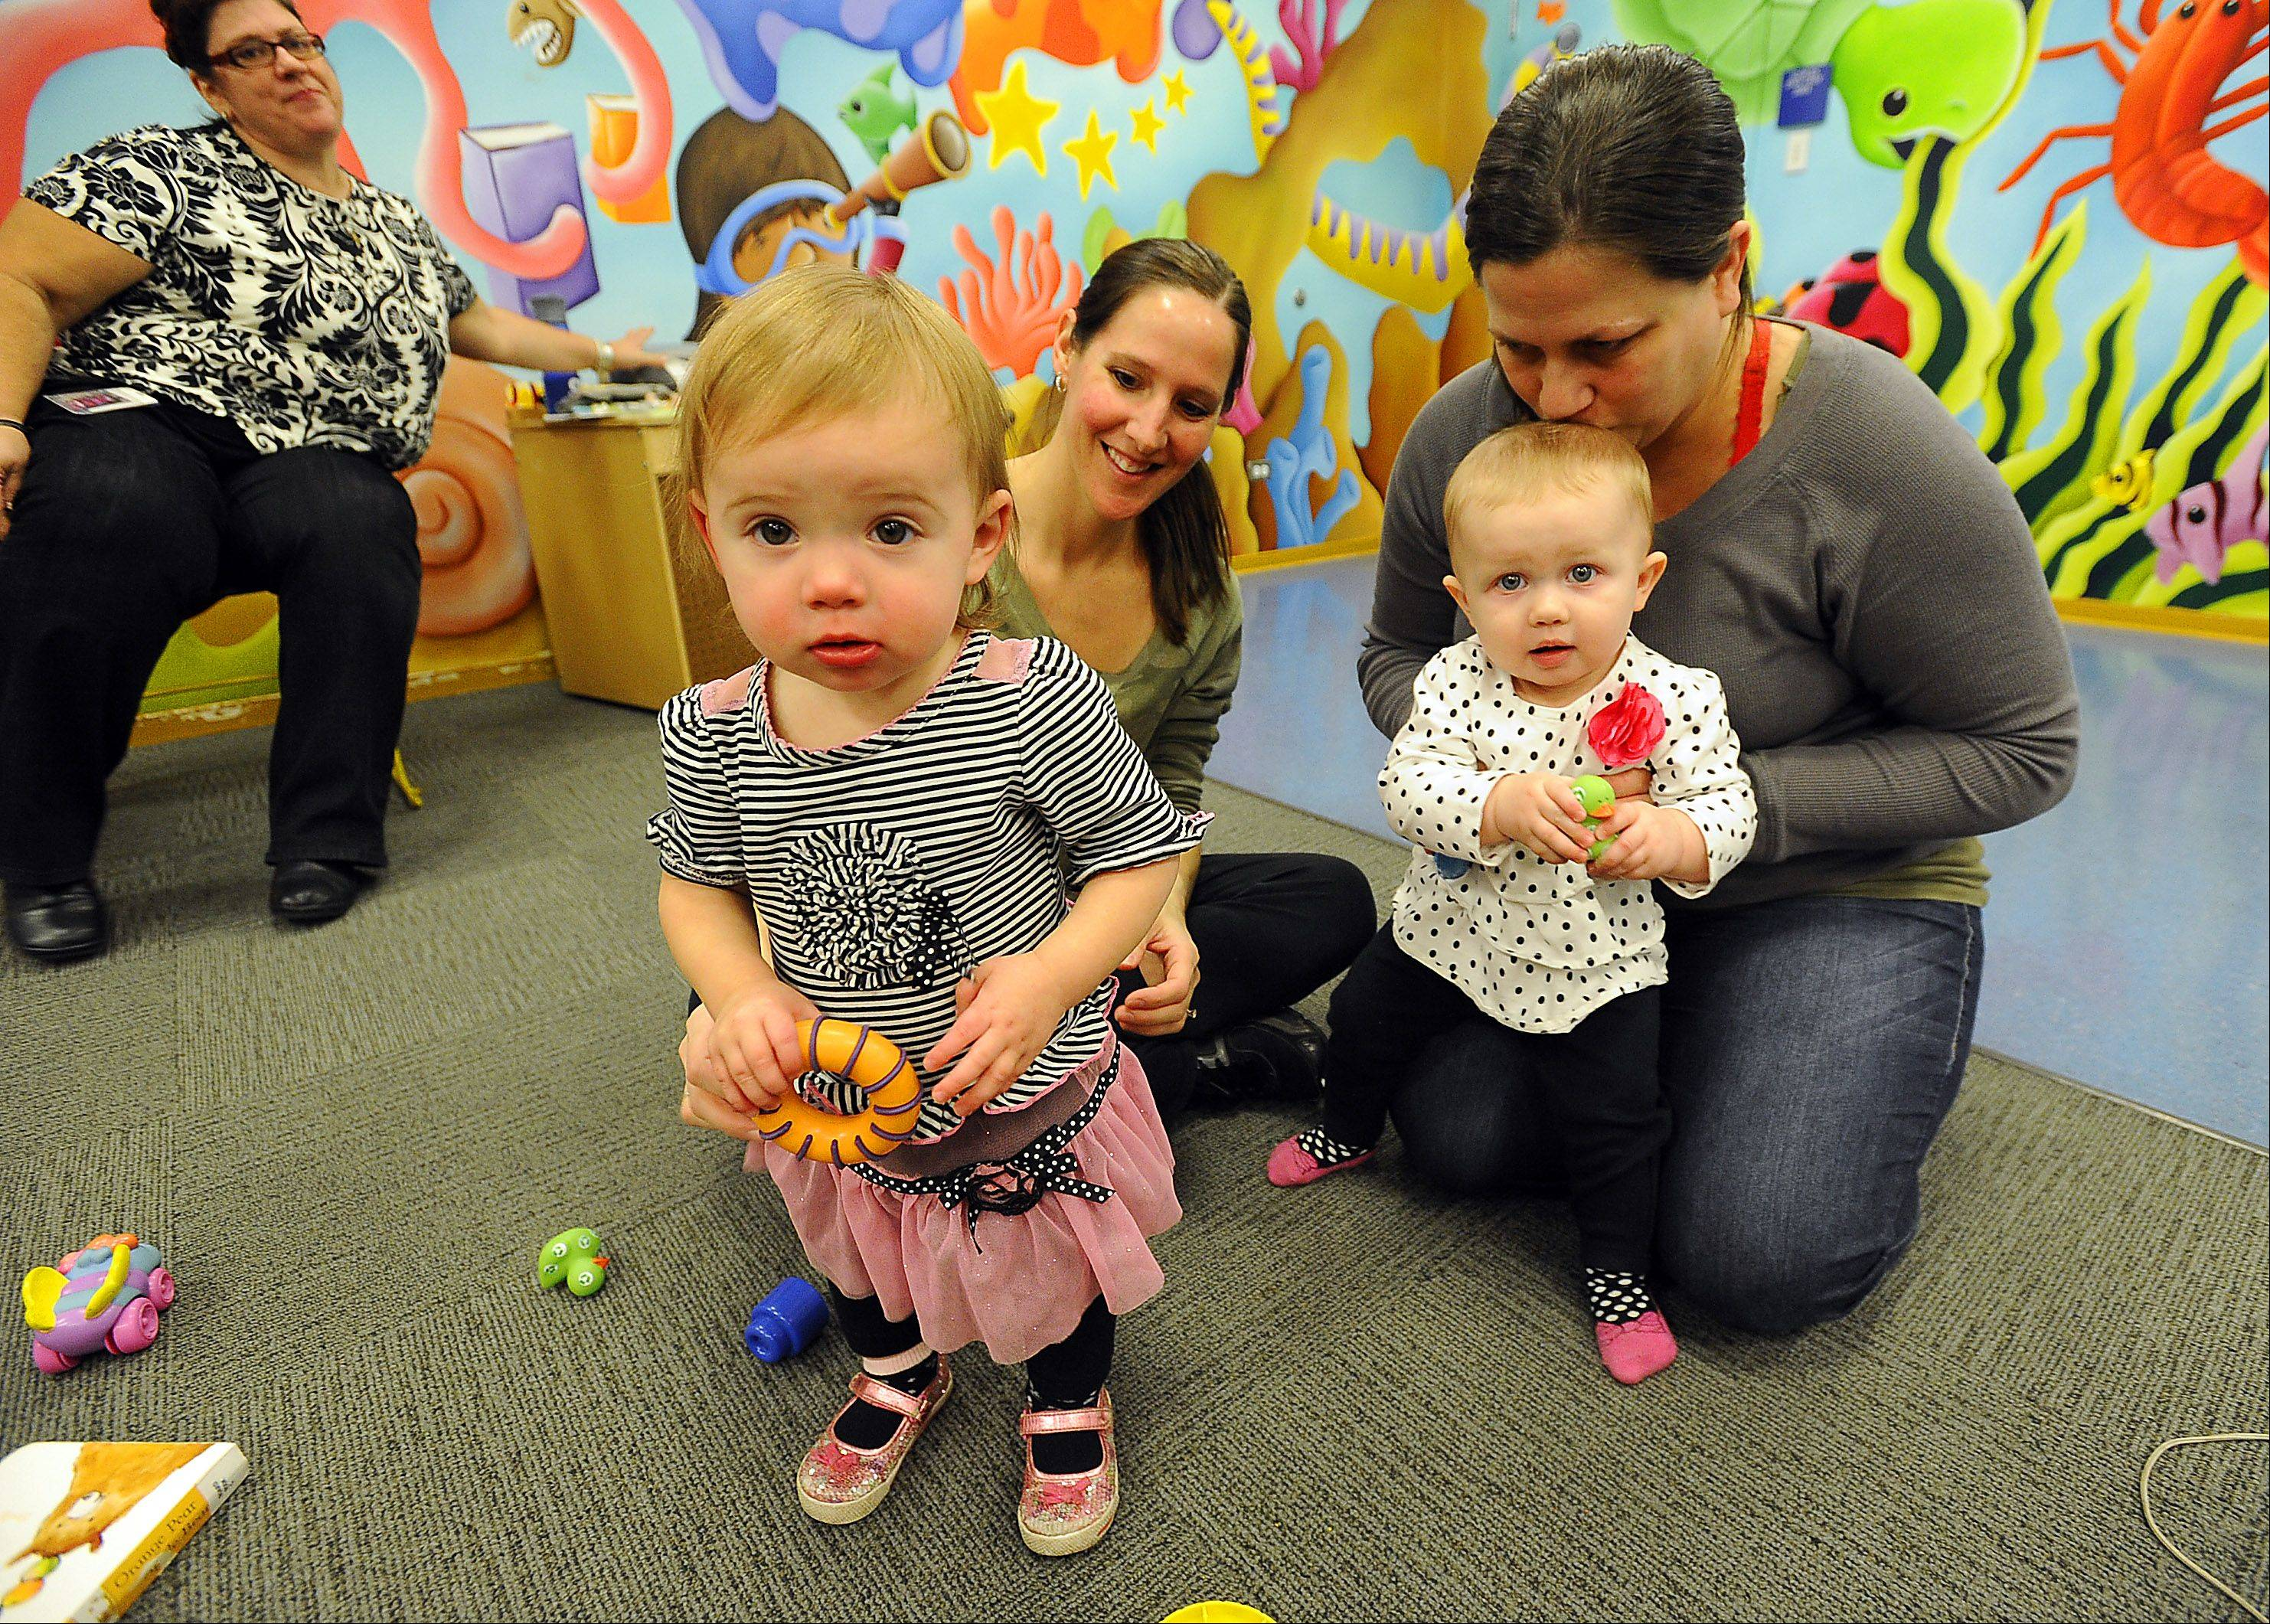 Irene Tripkos, left, Infant Toddler Specialist of District 62 Early Learning program, gets ready to start the class at the DesPlaines Public Library as Melissa Westphal and her 1 year old daughter Madeline, right, play with 1 year old Kensie Jewitt as her mother, Patty, looks on.